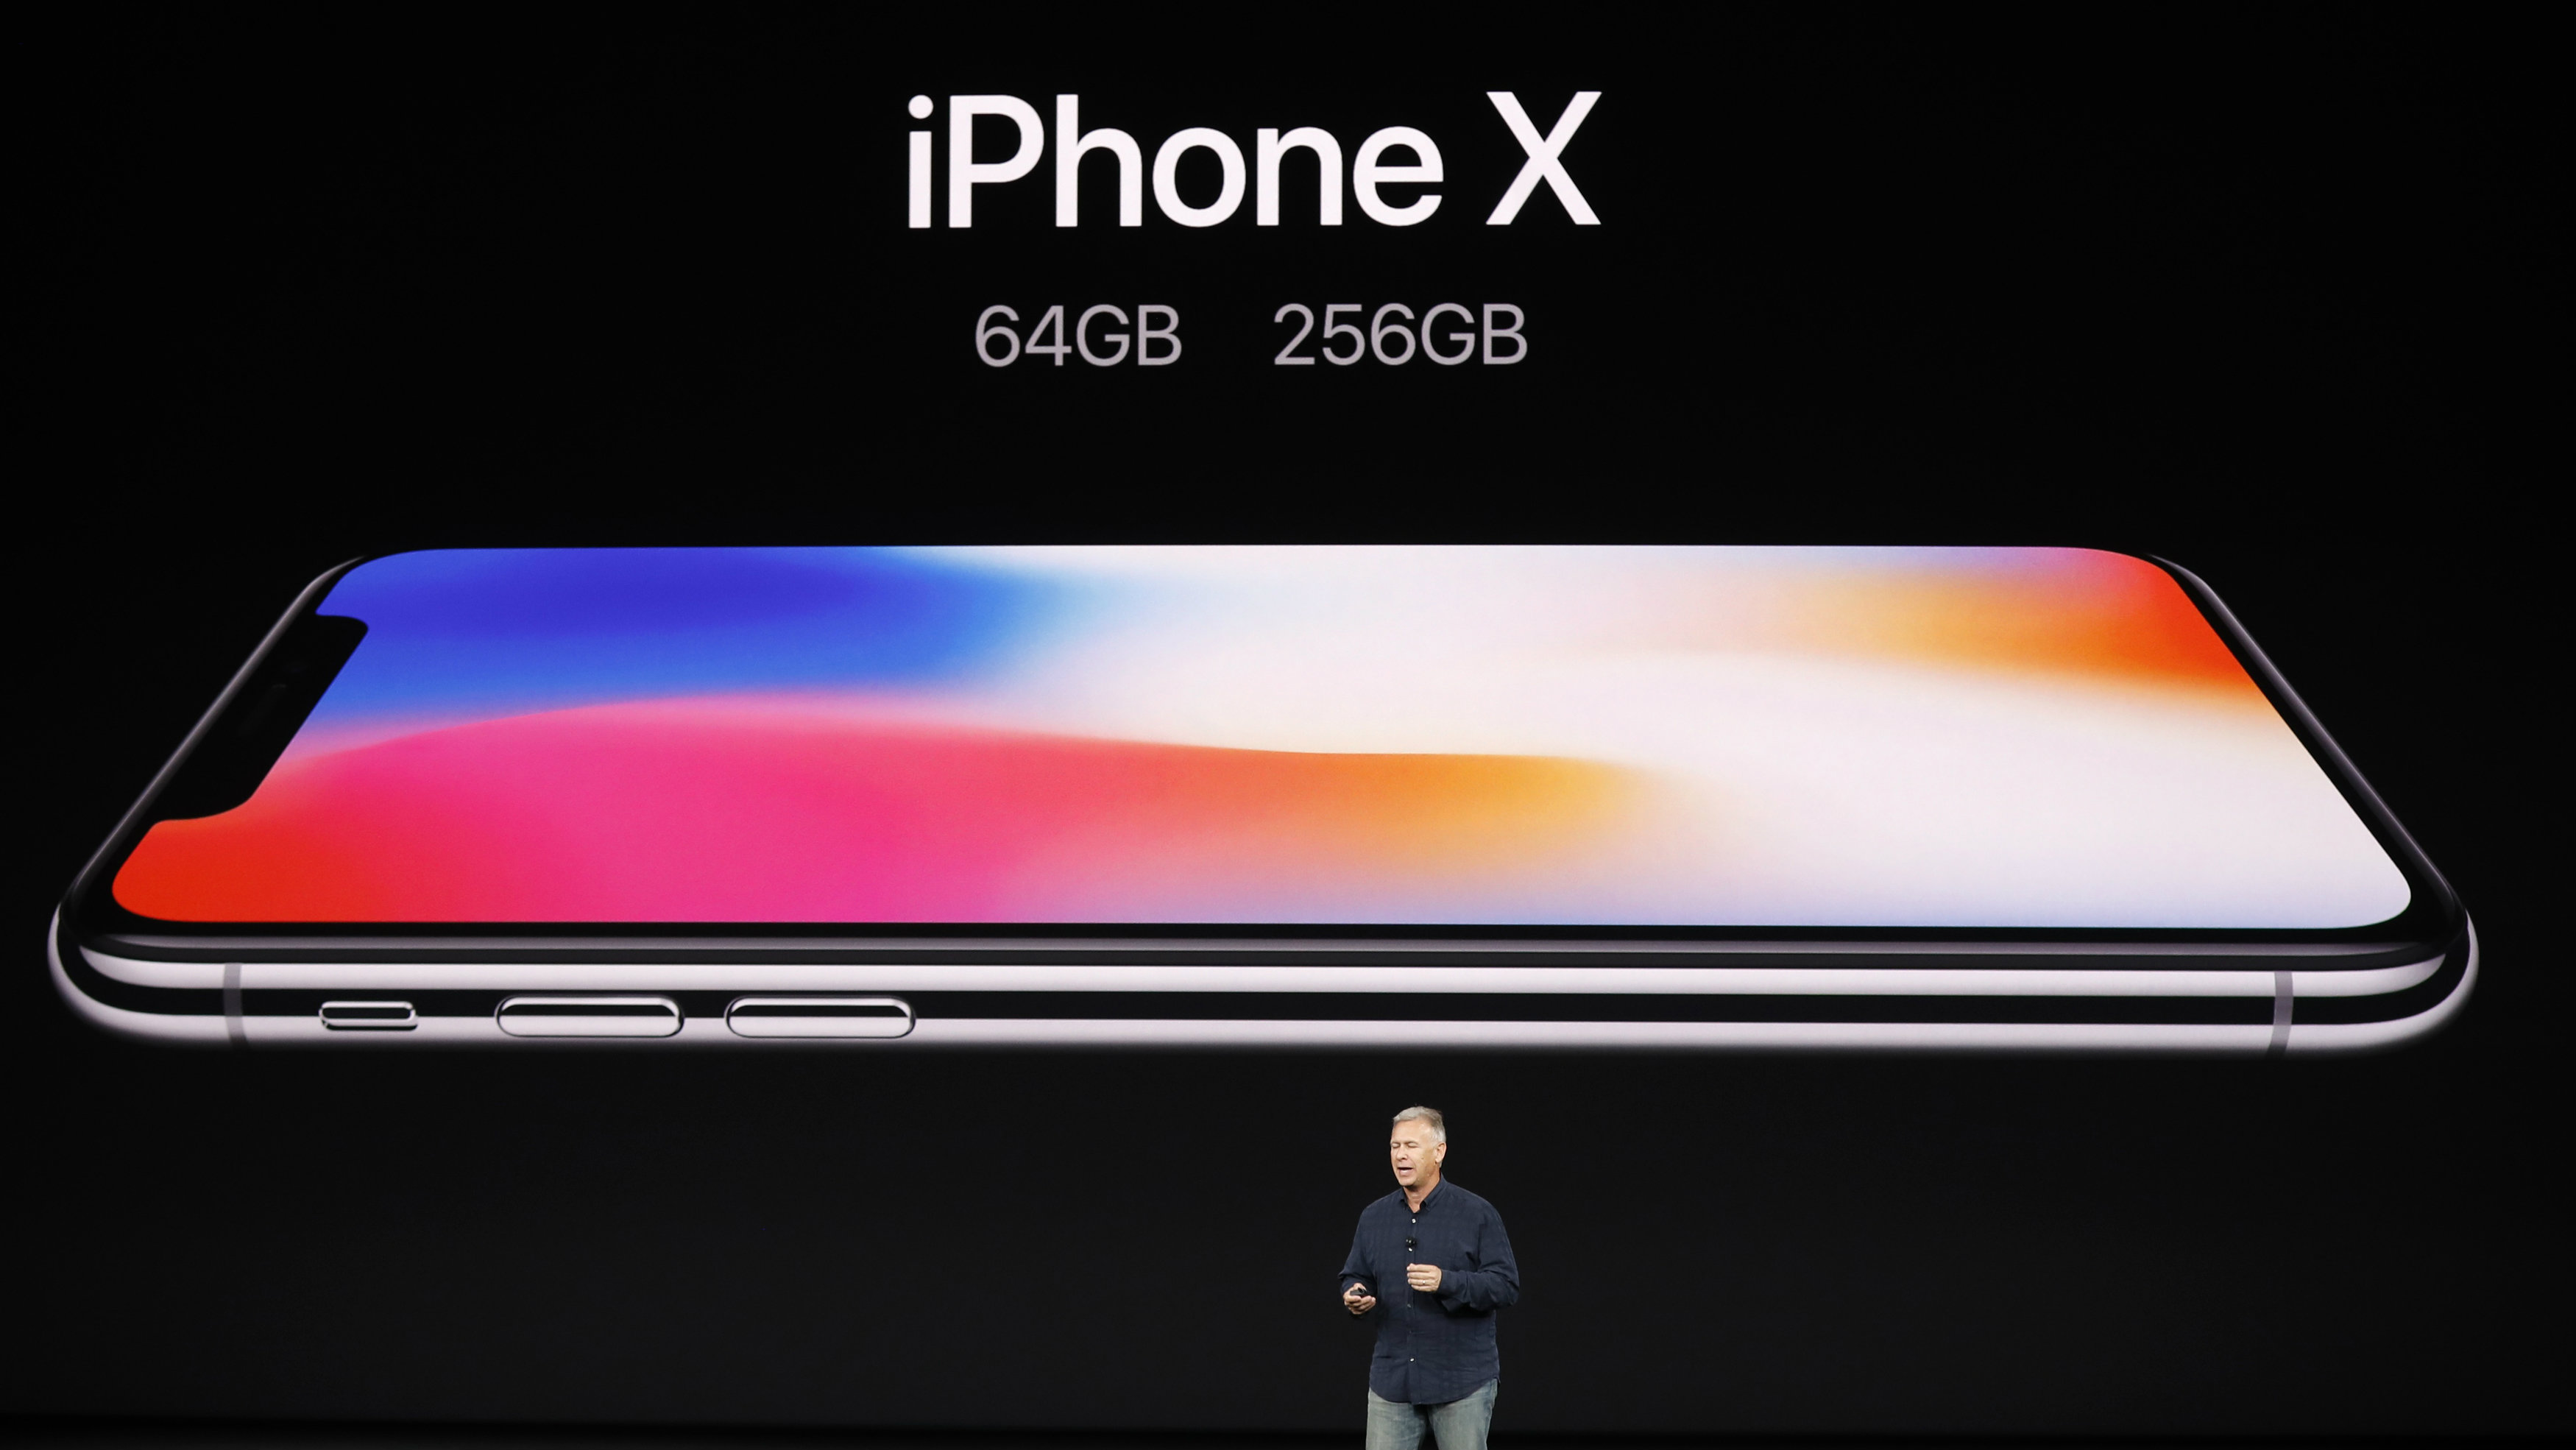 Where The Iphone X Is Est And Most Expensive In Dollars Pounds Yuan